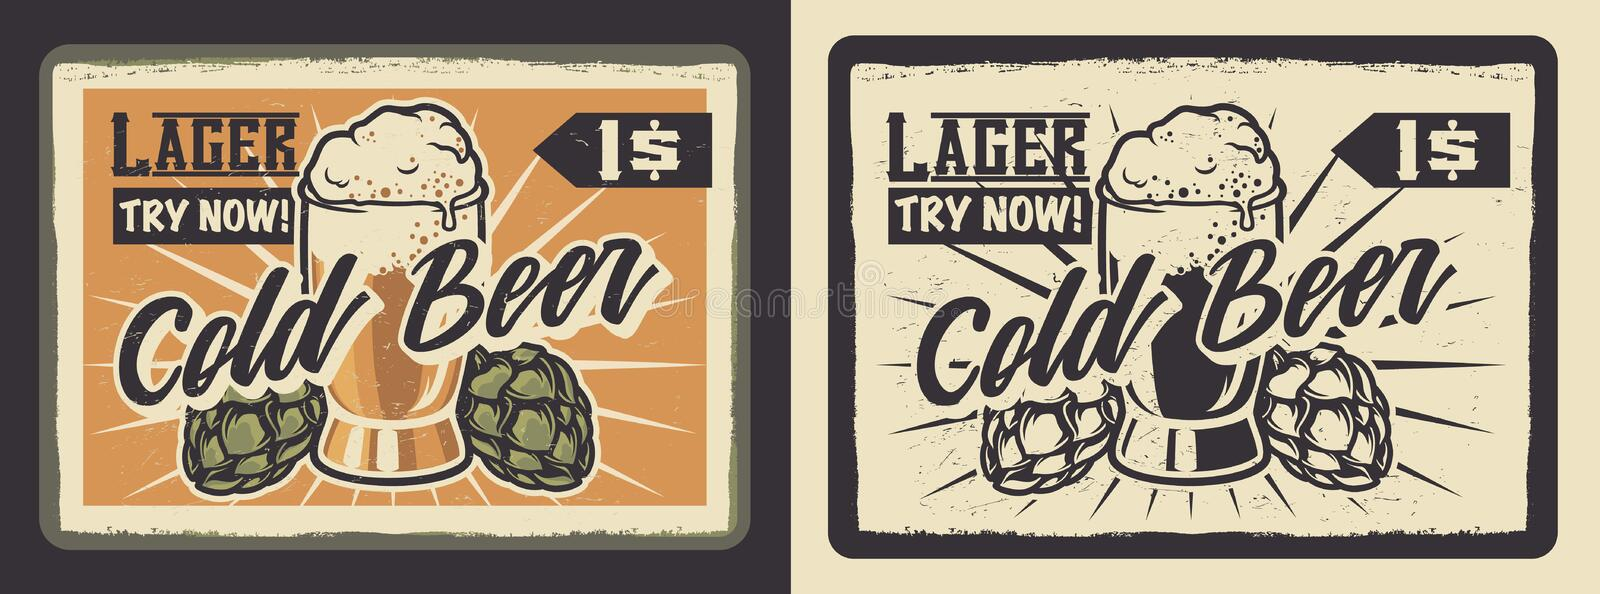 Vintage poster with a glass of beer. royalty free illustration